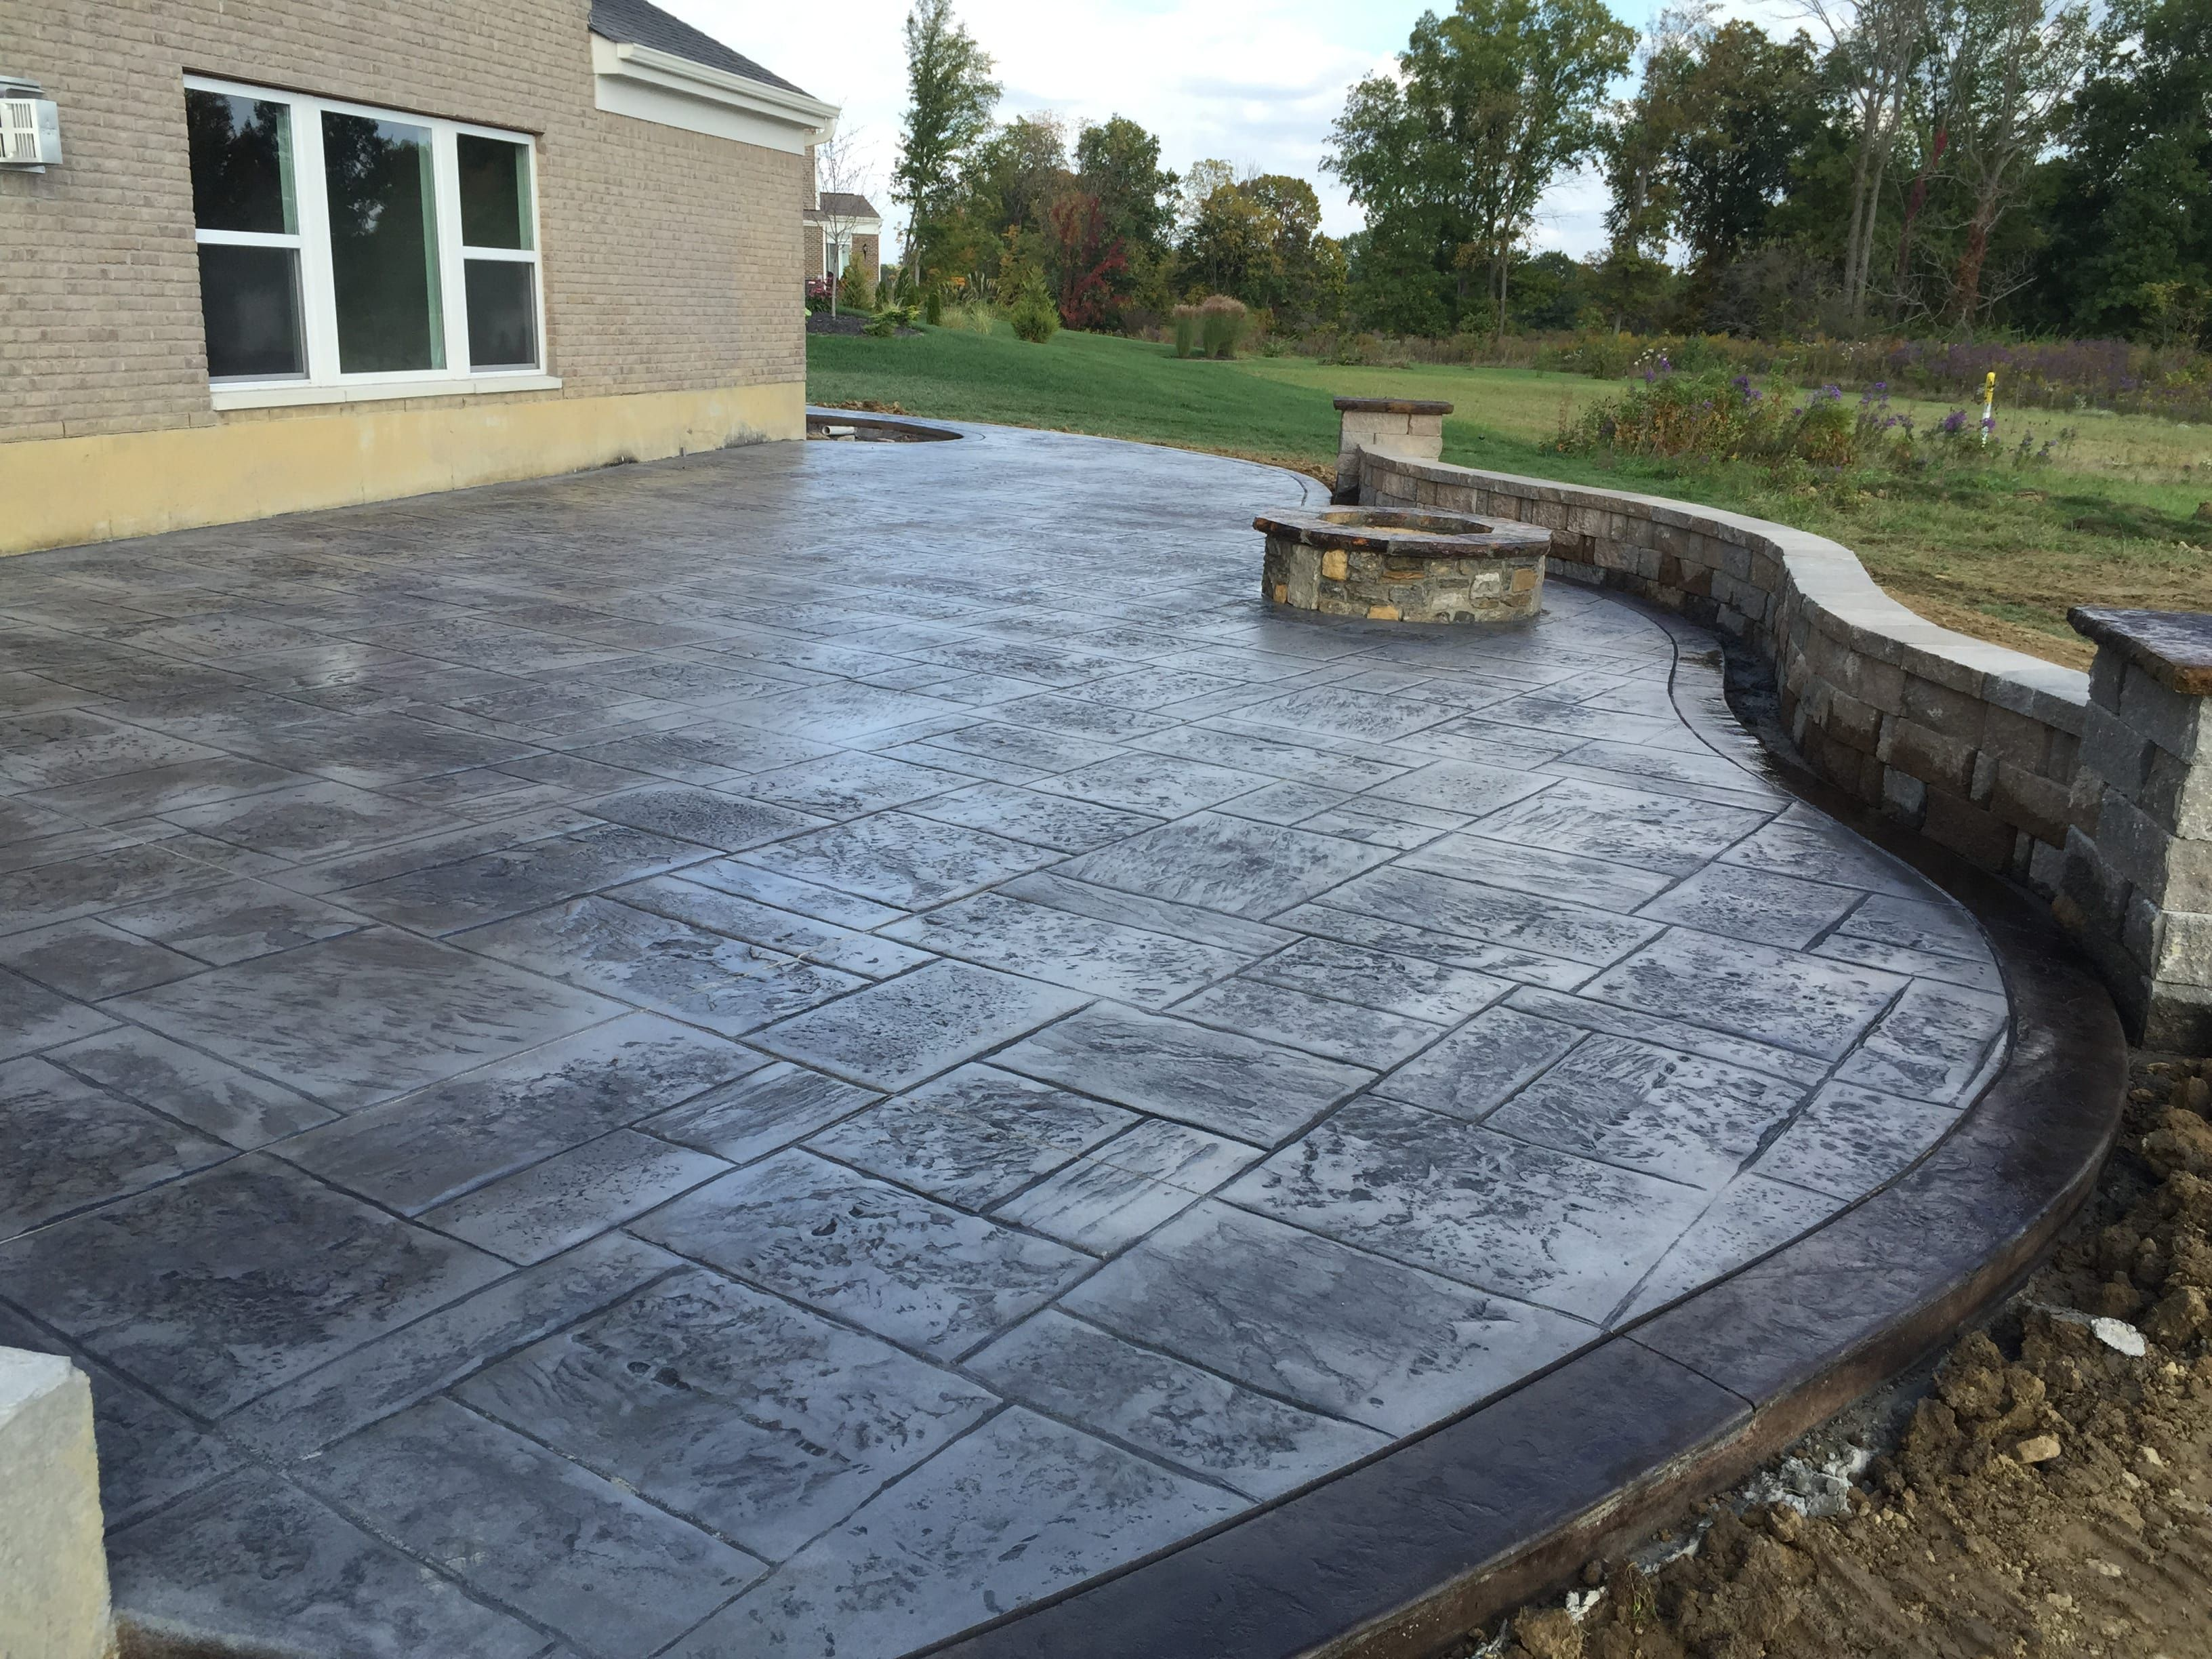 Stamped Concrete With Seating Walls Columns And Fire Pit Loveland Ohio Stamped Concrete Concrete Decor Stamped Concrete Patio